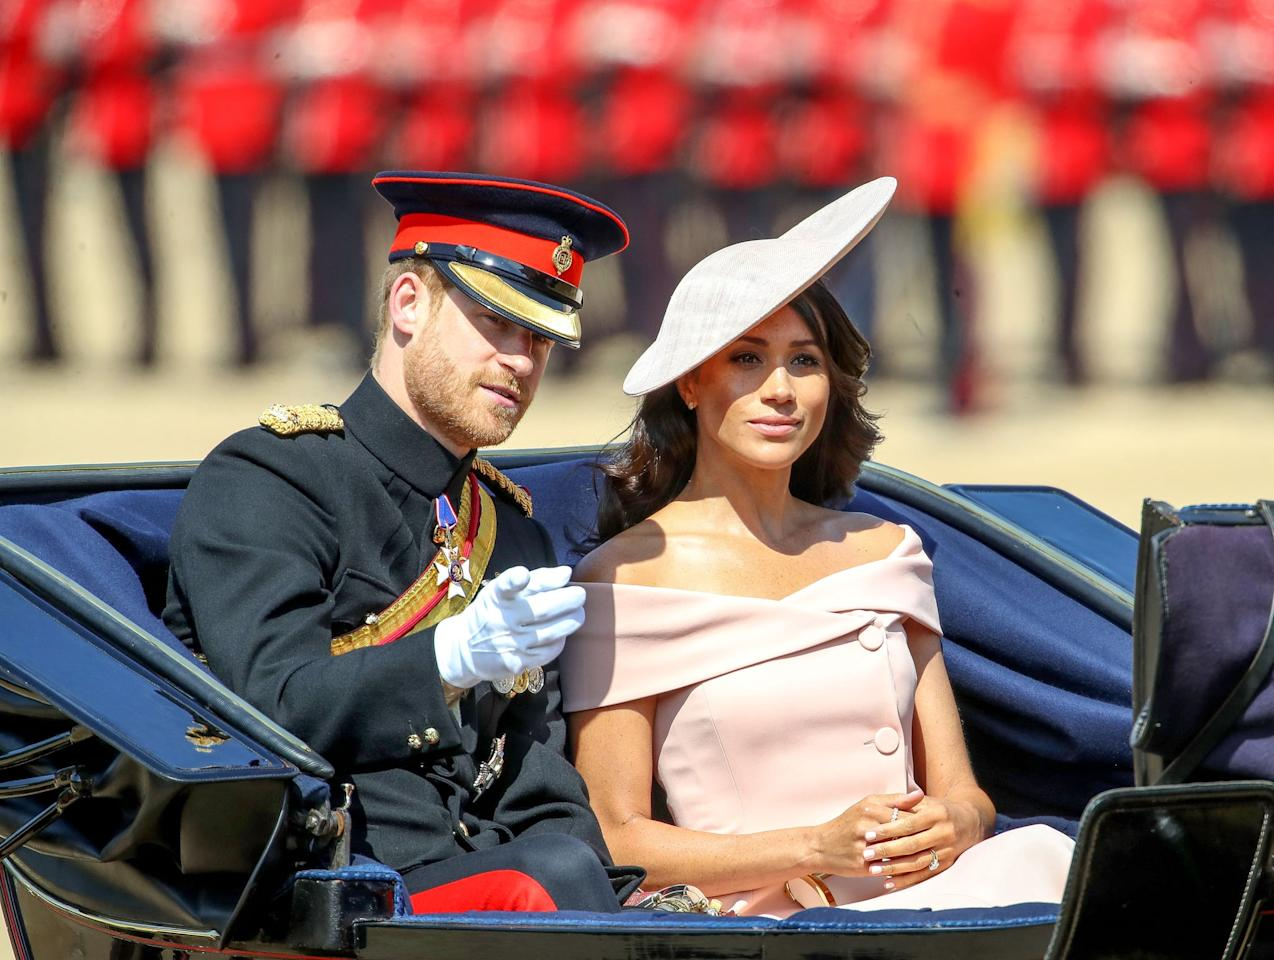 """<ul> <li>""""I personally love the fact that <a href=""""https://www.popsugar.com/fashion/Meghan-Markle-Breaking-Fashion-Rules-44932499"""" class=""""ga-track"""" data-ga-category=""""Related"""" data-ga-label=""""https://www.popsugar.com/fashion/Meghan-Markle-Breaking-Fashion-Rules-44932499"""" data-ga-action=""""In-Line Links"""">Meghan is a rule-breaker</a> when it comes to fashion. Just because <a href=""""https://www.popsugar.com/celebrity/Prince-Harry-Meghan-Markle-Wedding-Pictures-44843378"""" class=""""ga-track"""" data-ga-category=""""Related"""" data-ga-label=""""https://www.popsugar.com/celebrity/Prince-Harry-Meghan-Markle-Wedding-Pictures-44843378"""" data-ga-action=""""In-Line Links"""">she married into the royal family</a> doesn't mean that she's going to stop being herself. In fact, this is the very reason why she's even more relatable to me."""" - <em>Nikita Ramsinghani, associate editor, Fashion</em> </li> <li>""""I love Meghan because she reps brands she believes in and promotes lesser-known companies that better the world. Her decision to wear <a href=""""https://www.popsugar.com/fashion/Meghan-Markle-Outland-Denim-Jeans-45432077"""" class=""""ga-track"""" data-ga-category=""""Related"""" data-ga-label=""""https://www.popsugar.com/fashion/Meghan-Markle-Outland-Denim-Jeans-45432077"""" data-ga-action=""""In-Line Links"""">sustainable brand Outland Denim</a> continuously throughout <a href=""""https://www.popsugar.com/fashion/Meghan-Markle-Australia-Tour-Style-2018-45381247"""" class=""""ga-track"""" data-ga-category=""""Related"""" data-ga-label=""""https://www.popsugar.com/fashion/Meghan-Markle-Australia-Tour-Style-2018-45381247"""" data-ga-action=""""In-Line Links"""">her tour is the perfect example</a>. Not only that, <a href=""""https://www.popsugar.com/celebrity/Who-Meghan-Markle-Friends-44106786"""" class=""""ga-track"""" data-ga-category=""""Related"""" data-ga-label=""""https://www.popsugar.com/celebrity/Who-Meghan-Markle-Friends-44106786"""" data-ga-action=""""In-Line Links"""">she supports her friends</a>, too. Meghan's had a longstanding relationship with Misha Nonoo, so seeing her <a href=""""ht"""